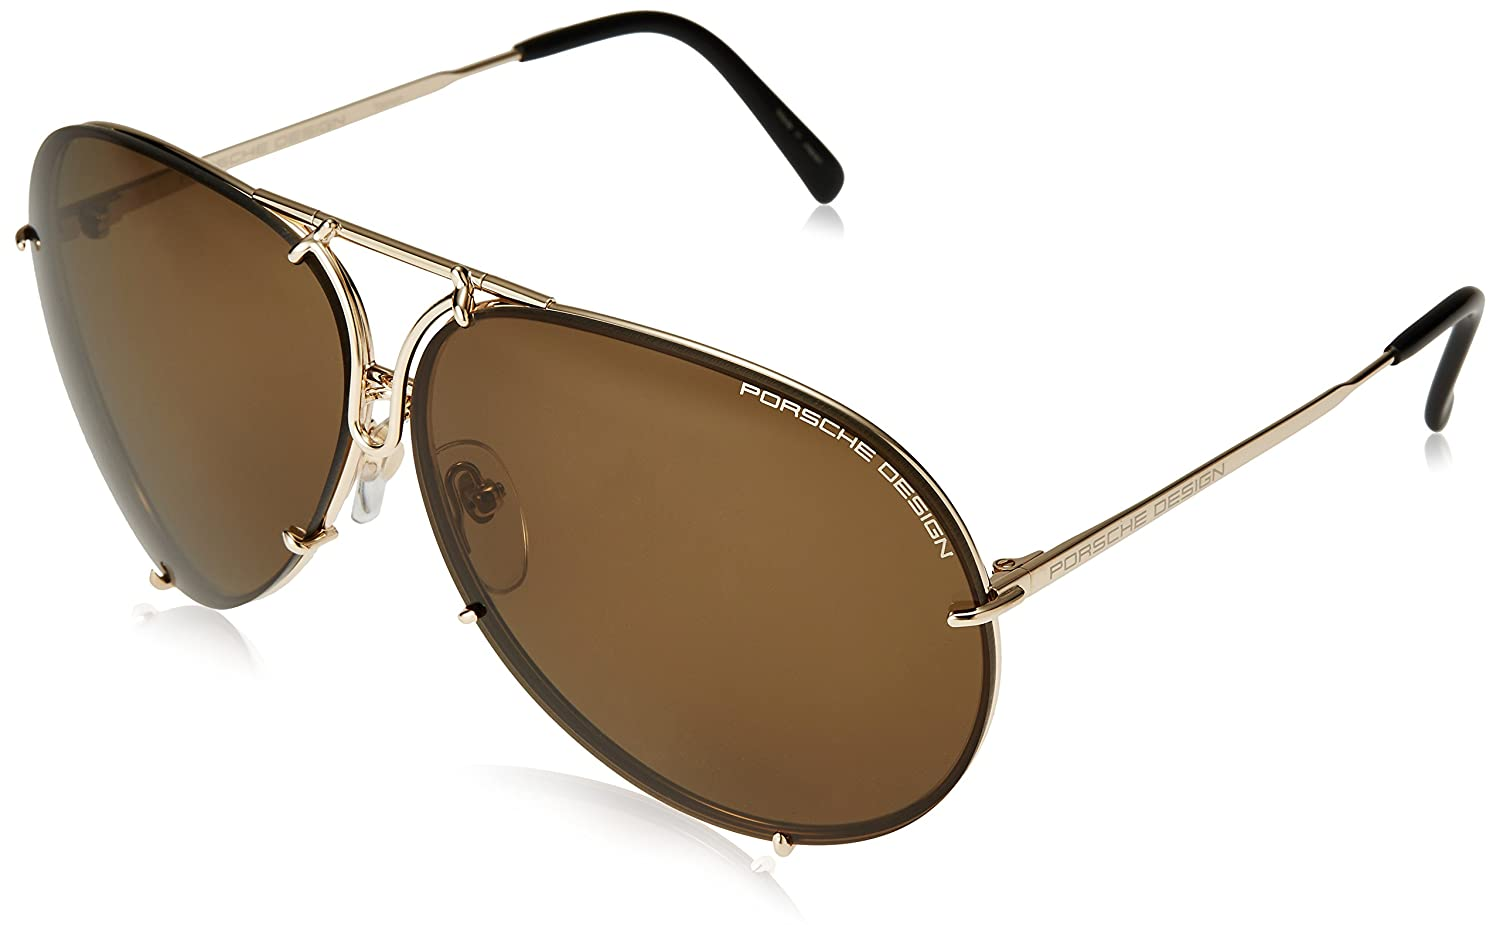 1e52e5026a2c Porsche Design Sonnenbrille (P8478)  Amazon.co.uk  Clothing